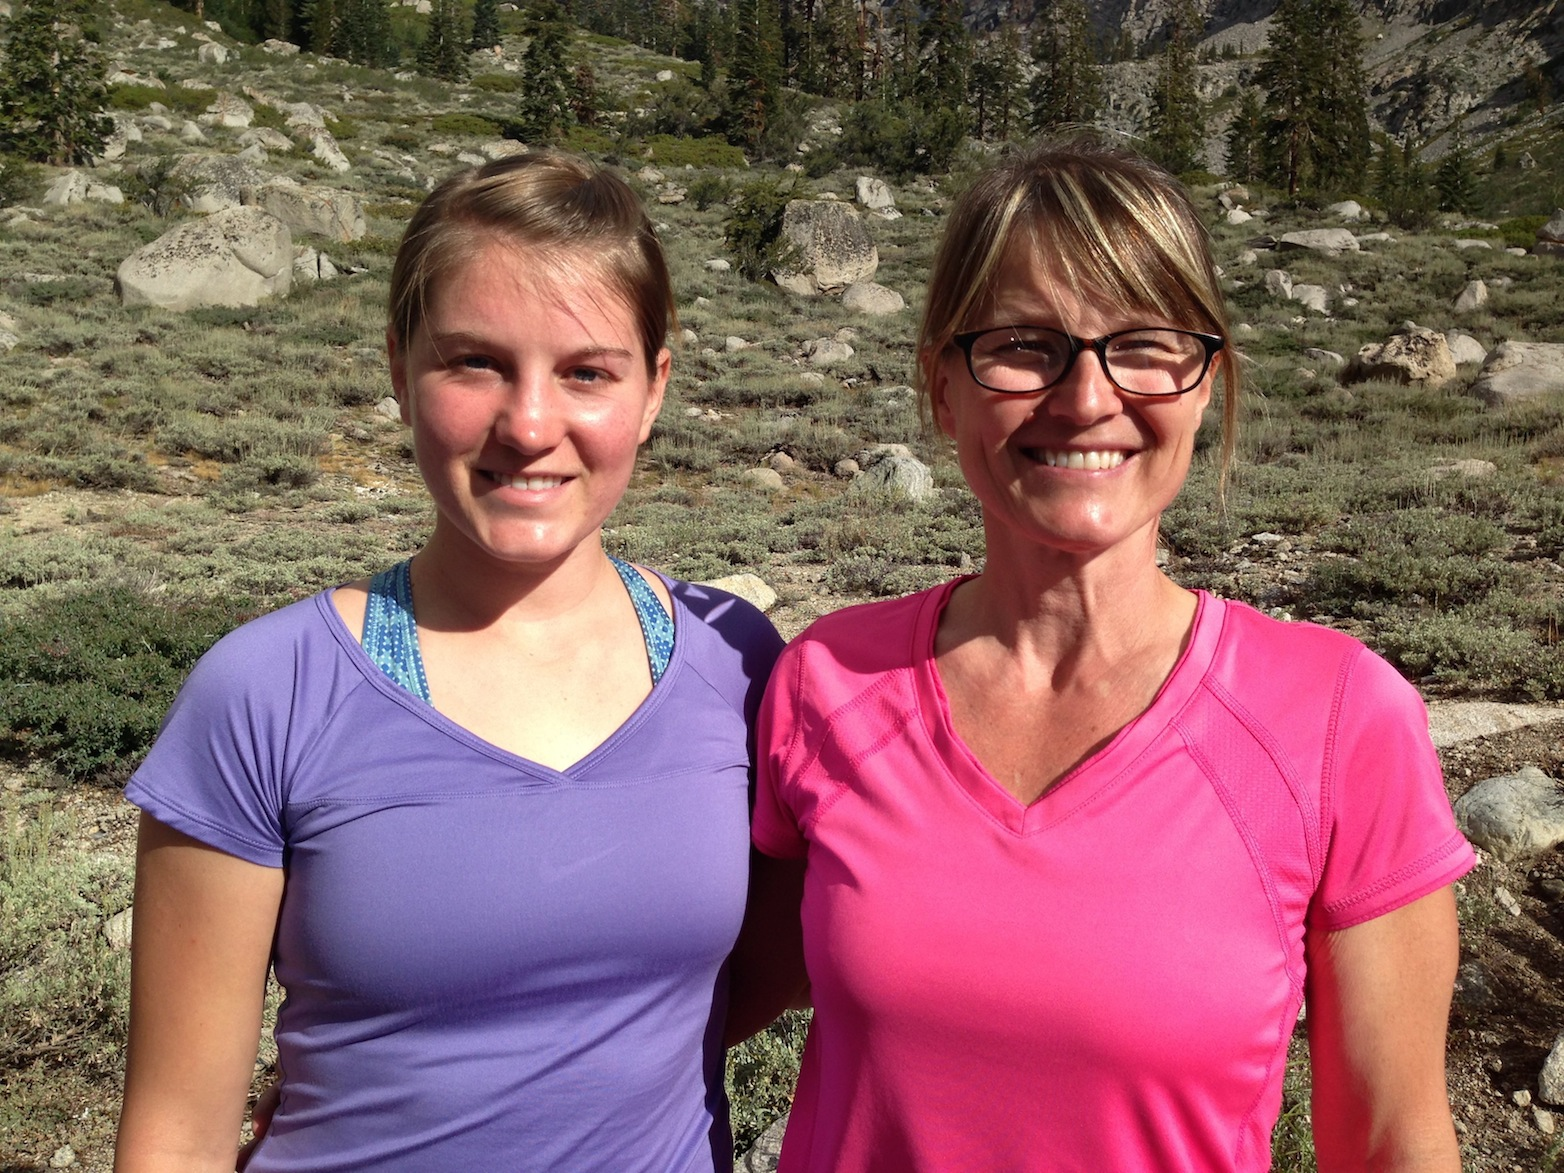 JMT hikers Beth and Debbie (mother and daughter) are ready to tackle Kearsarge Pass